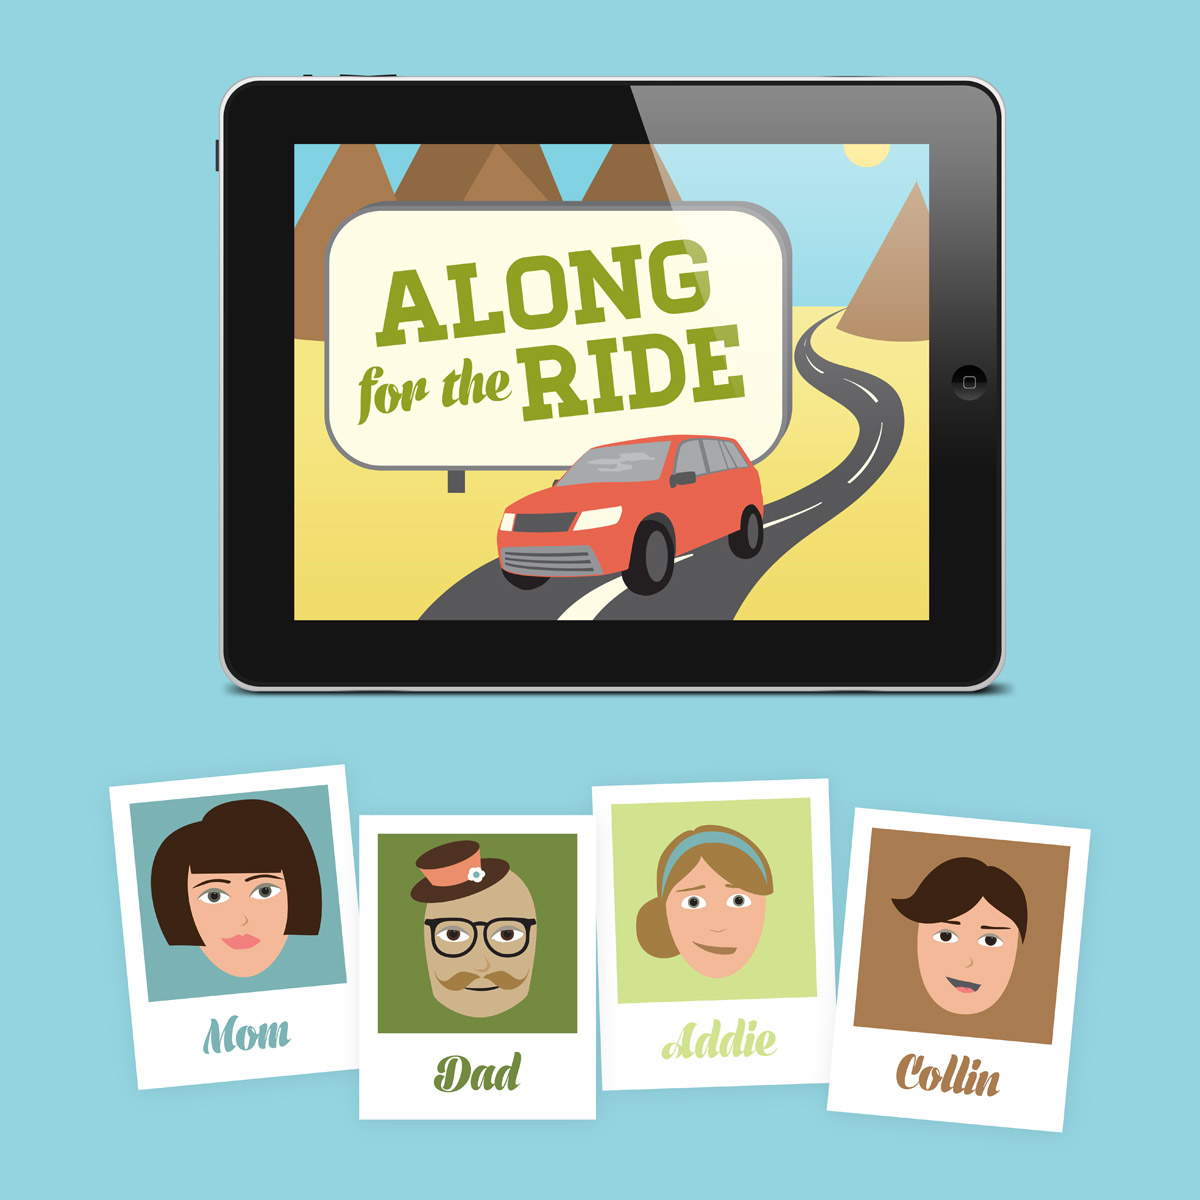 Along For The Ride app with sample avatars